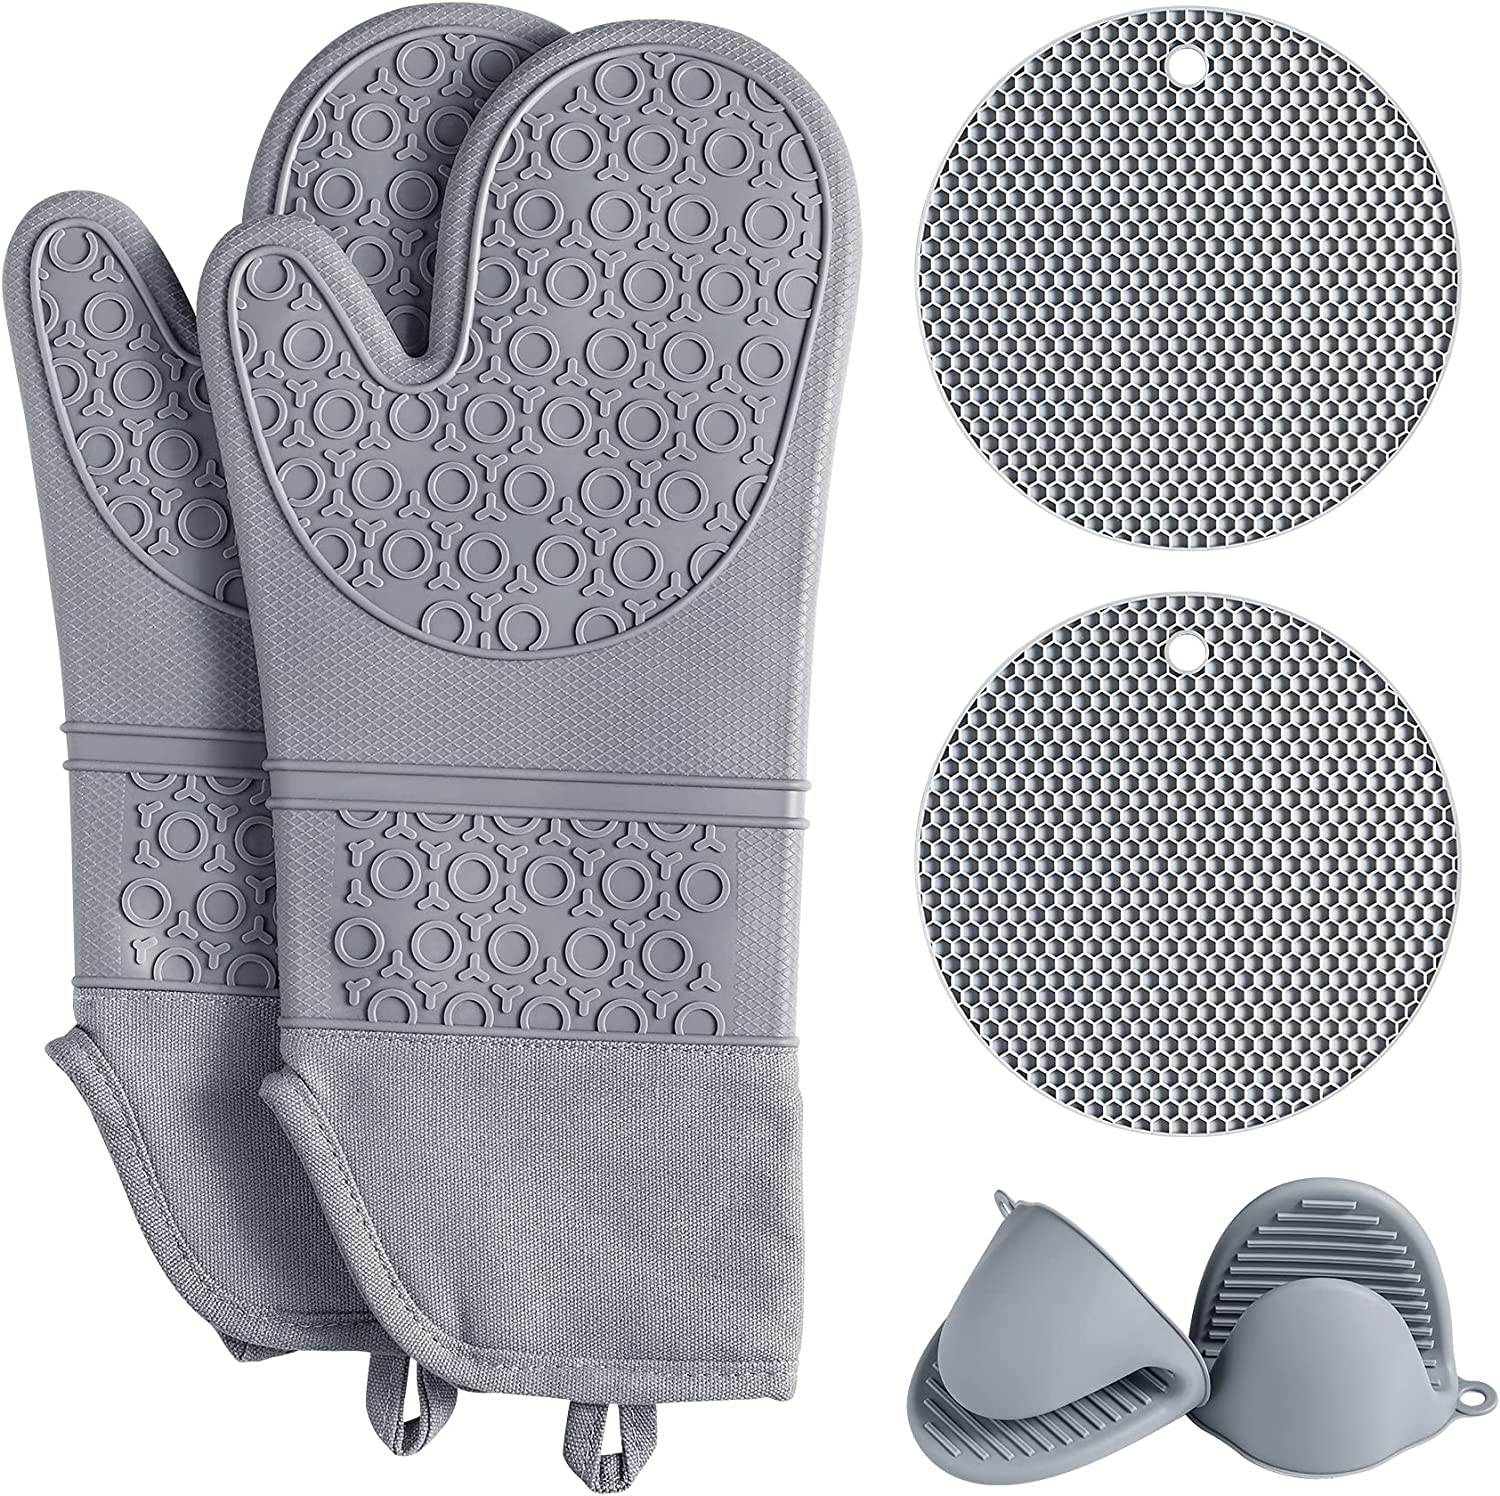 QUWIN Oven Mitts Set, Heat Resistant with Mini Oven Gloves and Hot Pads Potholders, Non-Slip Food Grade Long Oven Mitts for Kitchen Baking Cooking (6-Piece Set, Grey)